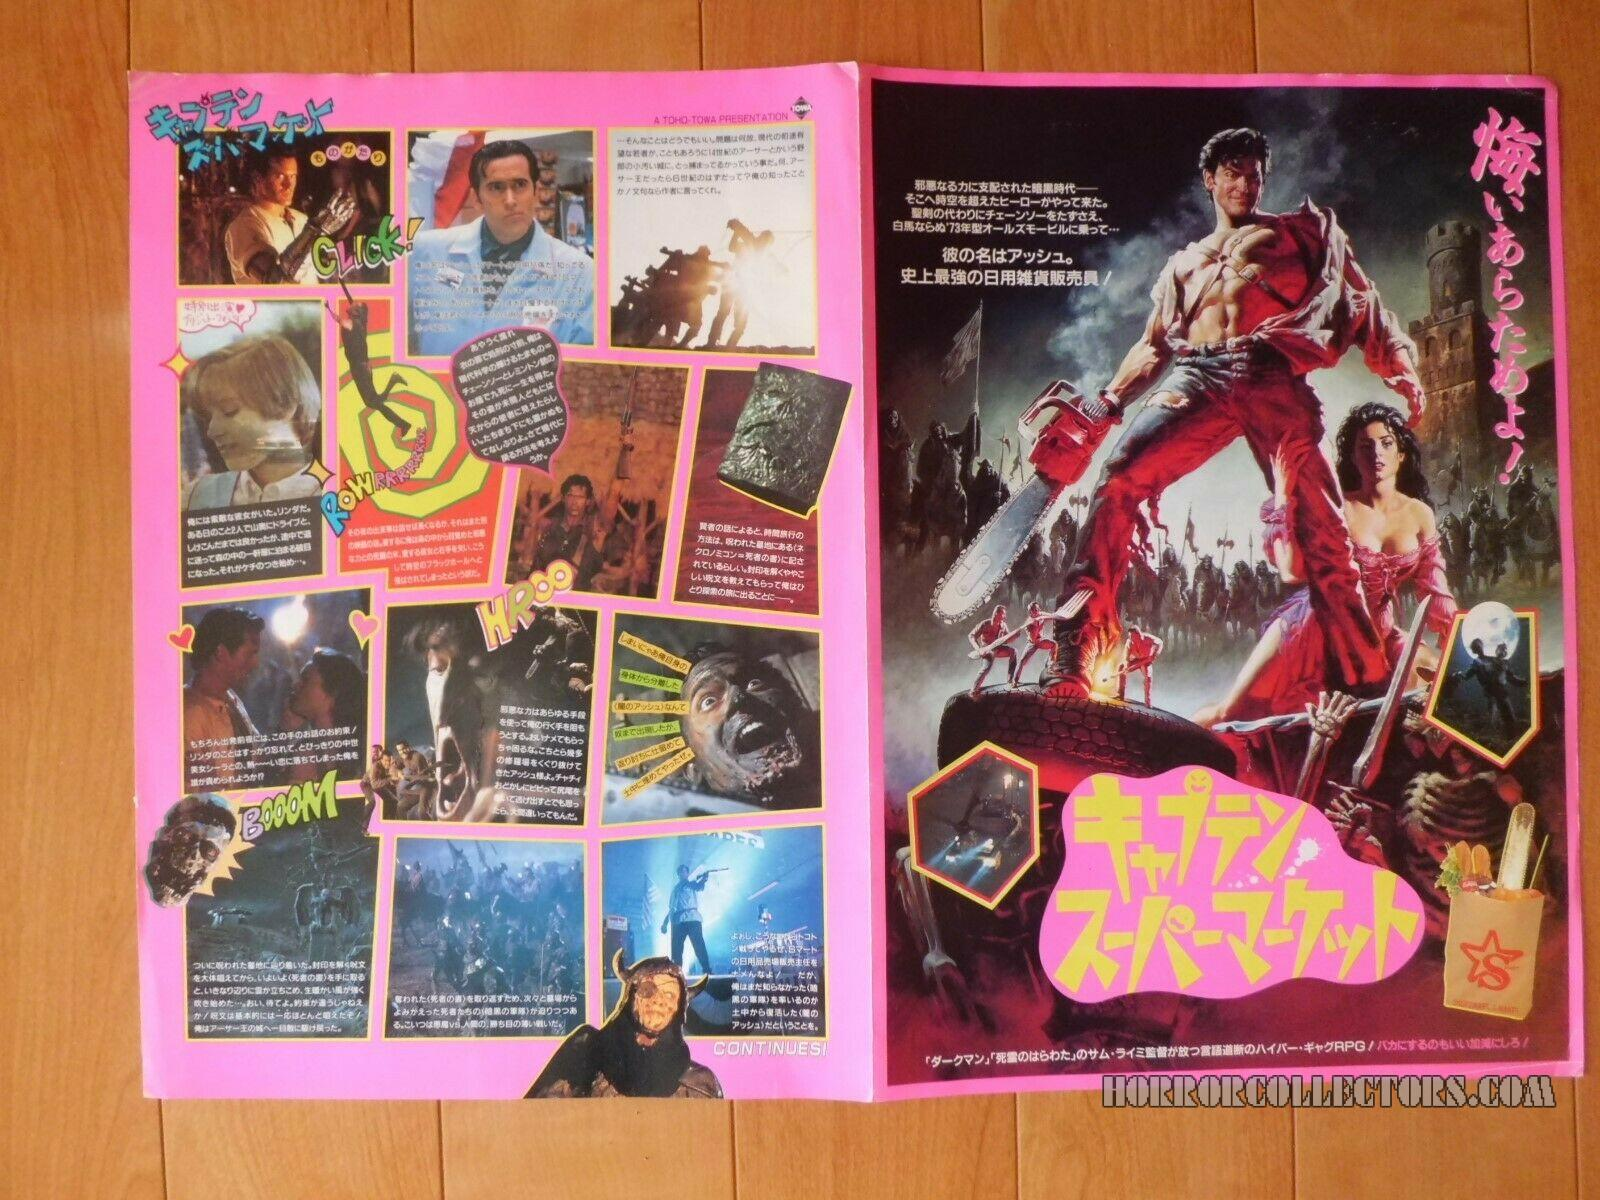 ARMY OF DARKNESS Japan press poster